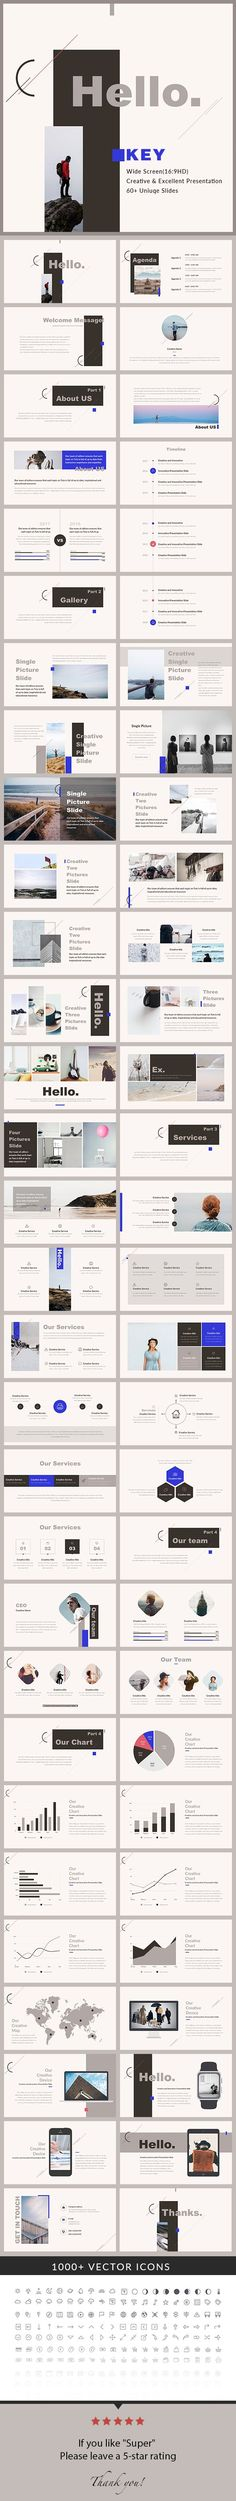 Hello - Keynote Presentation Template - Creative Keynote Templates